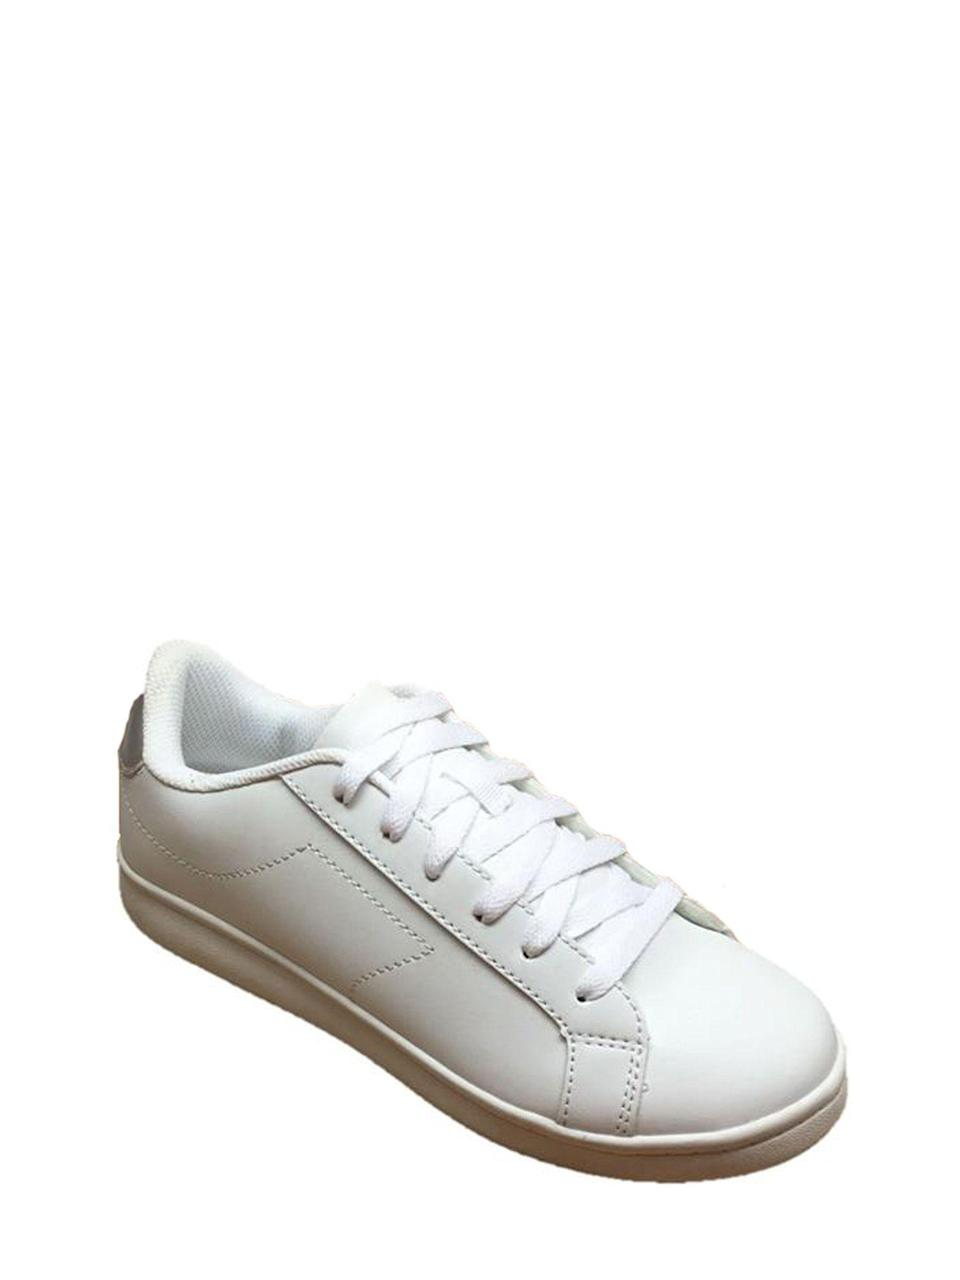 "<h3>White Tennis Sneakers</h3><p>For fans of the minimal downtown look, this very reasonably priced low-top sneaker offers all of the benefits of an edgy luxury shoe, without the high price tag.</p><br><br><strong>Time and Tru</strong> Court Shoe, $12.88, available at <a href=""https://www.walmart.com/ip/Time-and-Tru-Women-s-Court-Shoe/916149341"" rel=""nofollow noopener"" target=""_blank"" data-ylk=""slk:Walmart"" class=""link rapid-noclick-resp"">Walmart</a>"